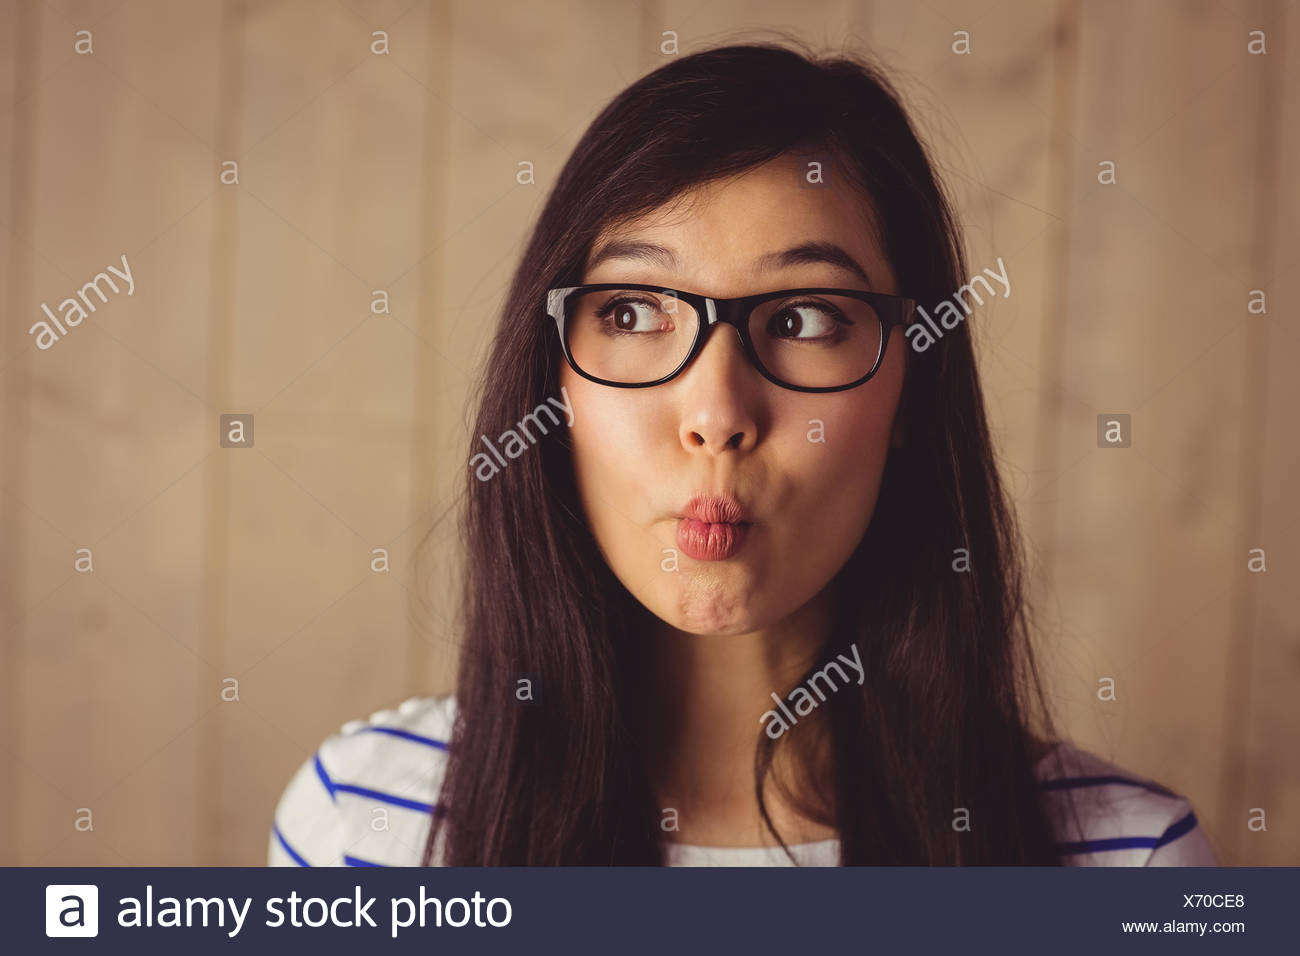 Young attractive woman grimacing for camera - Stock Image